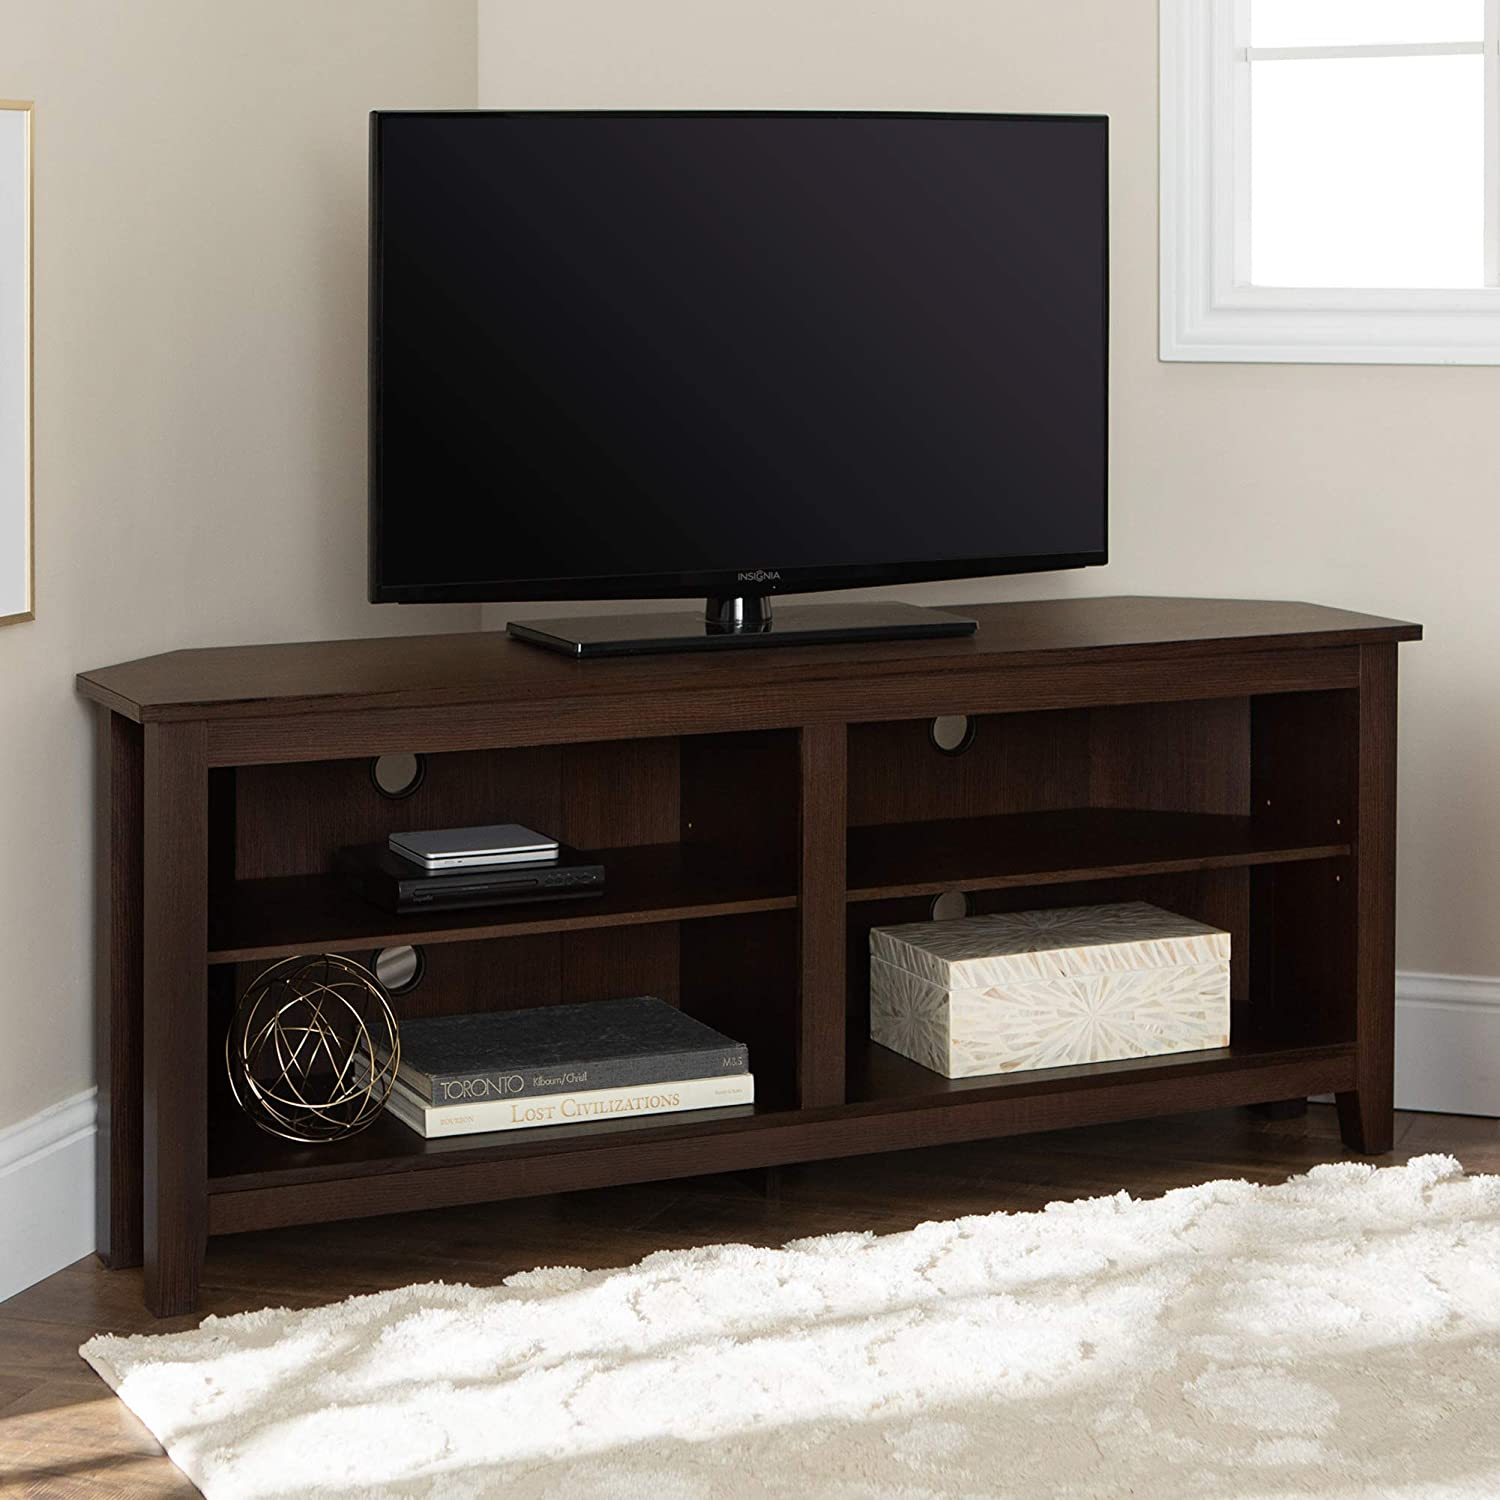 TV Table Top Stand Cabinet Unit Console Furniture Entertainment Center No Tools